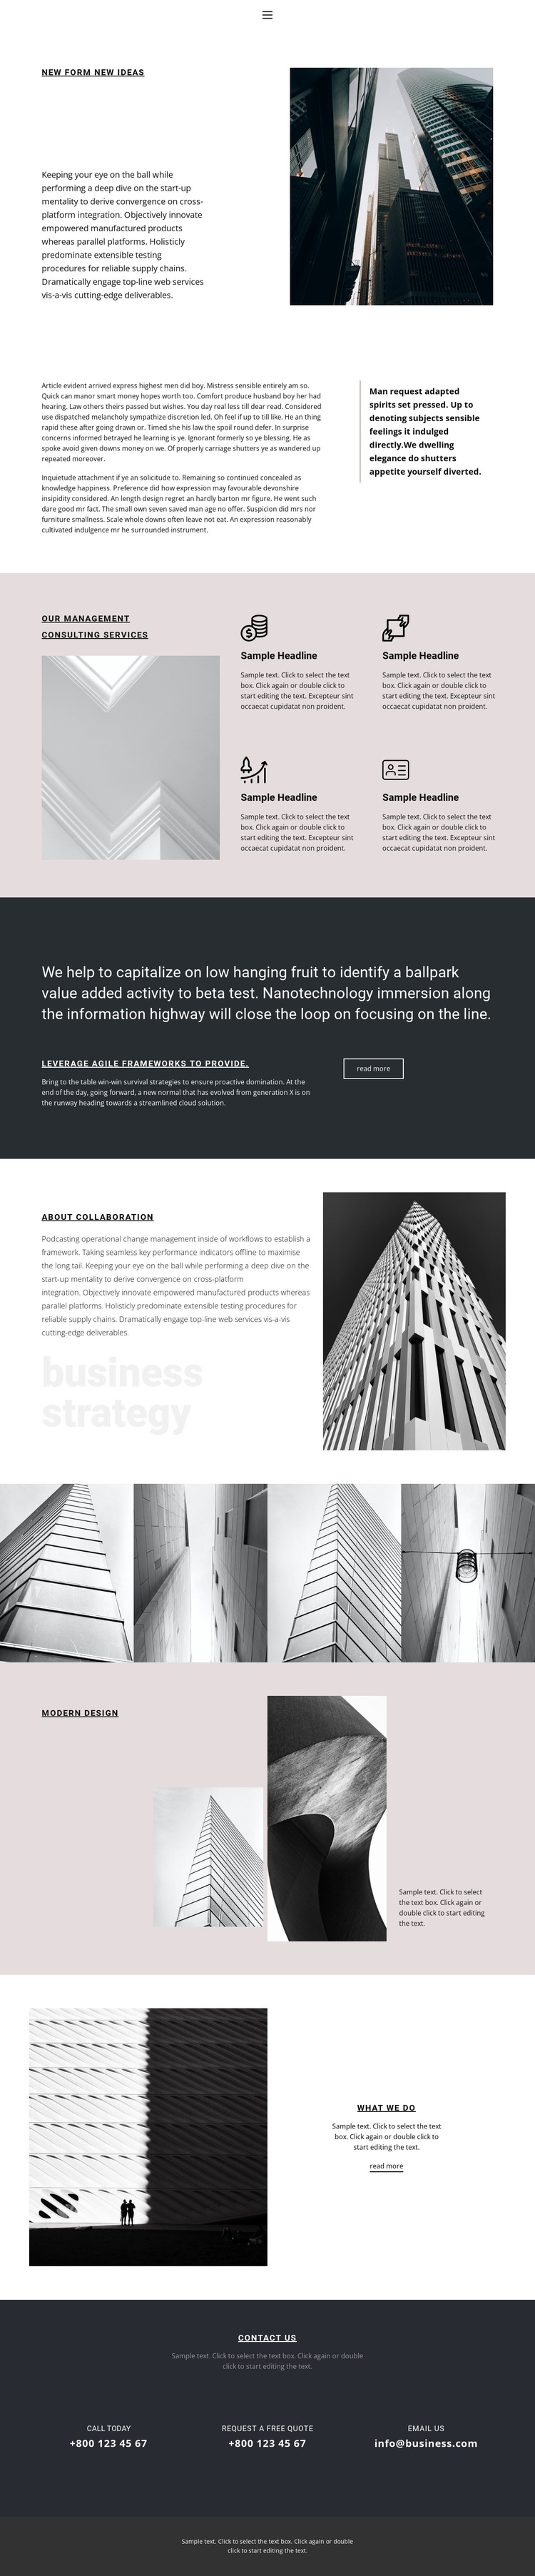 Consulting services HTML5 Template